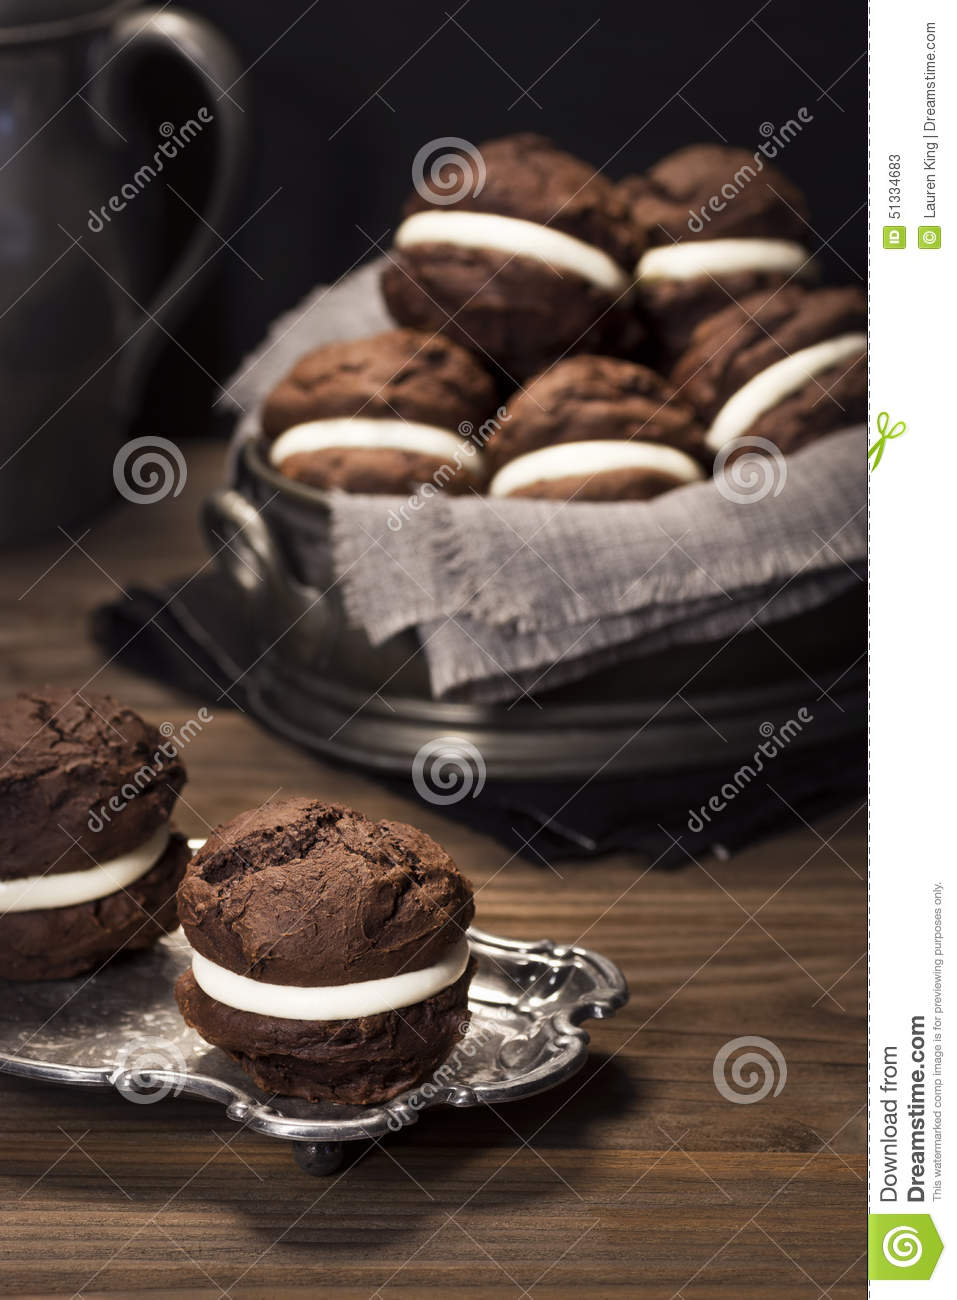 Chocolate Whoopie Pies or Moon Pies